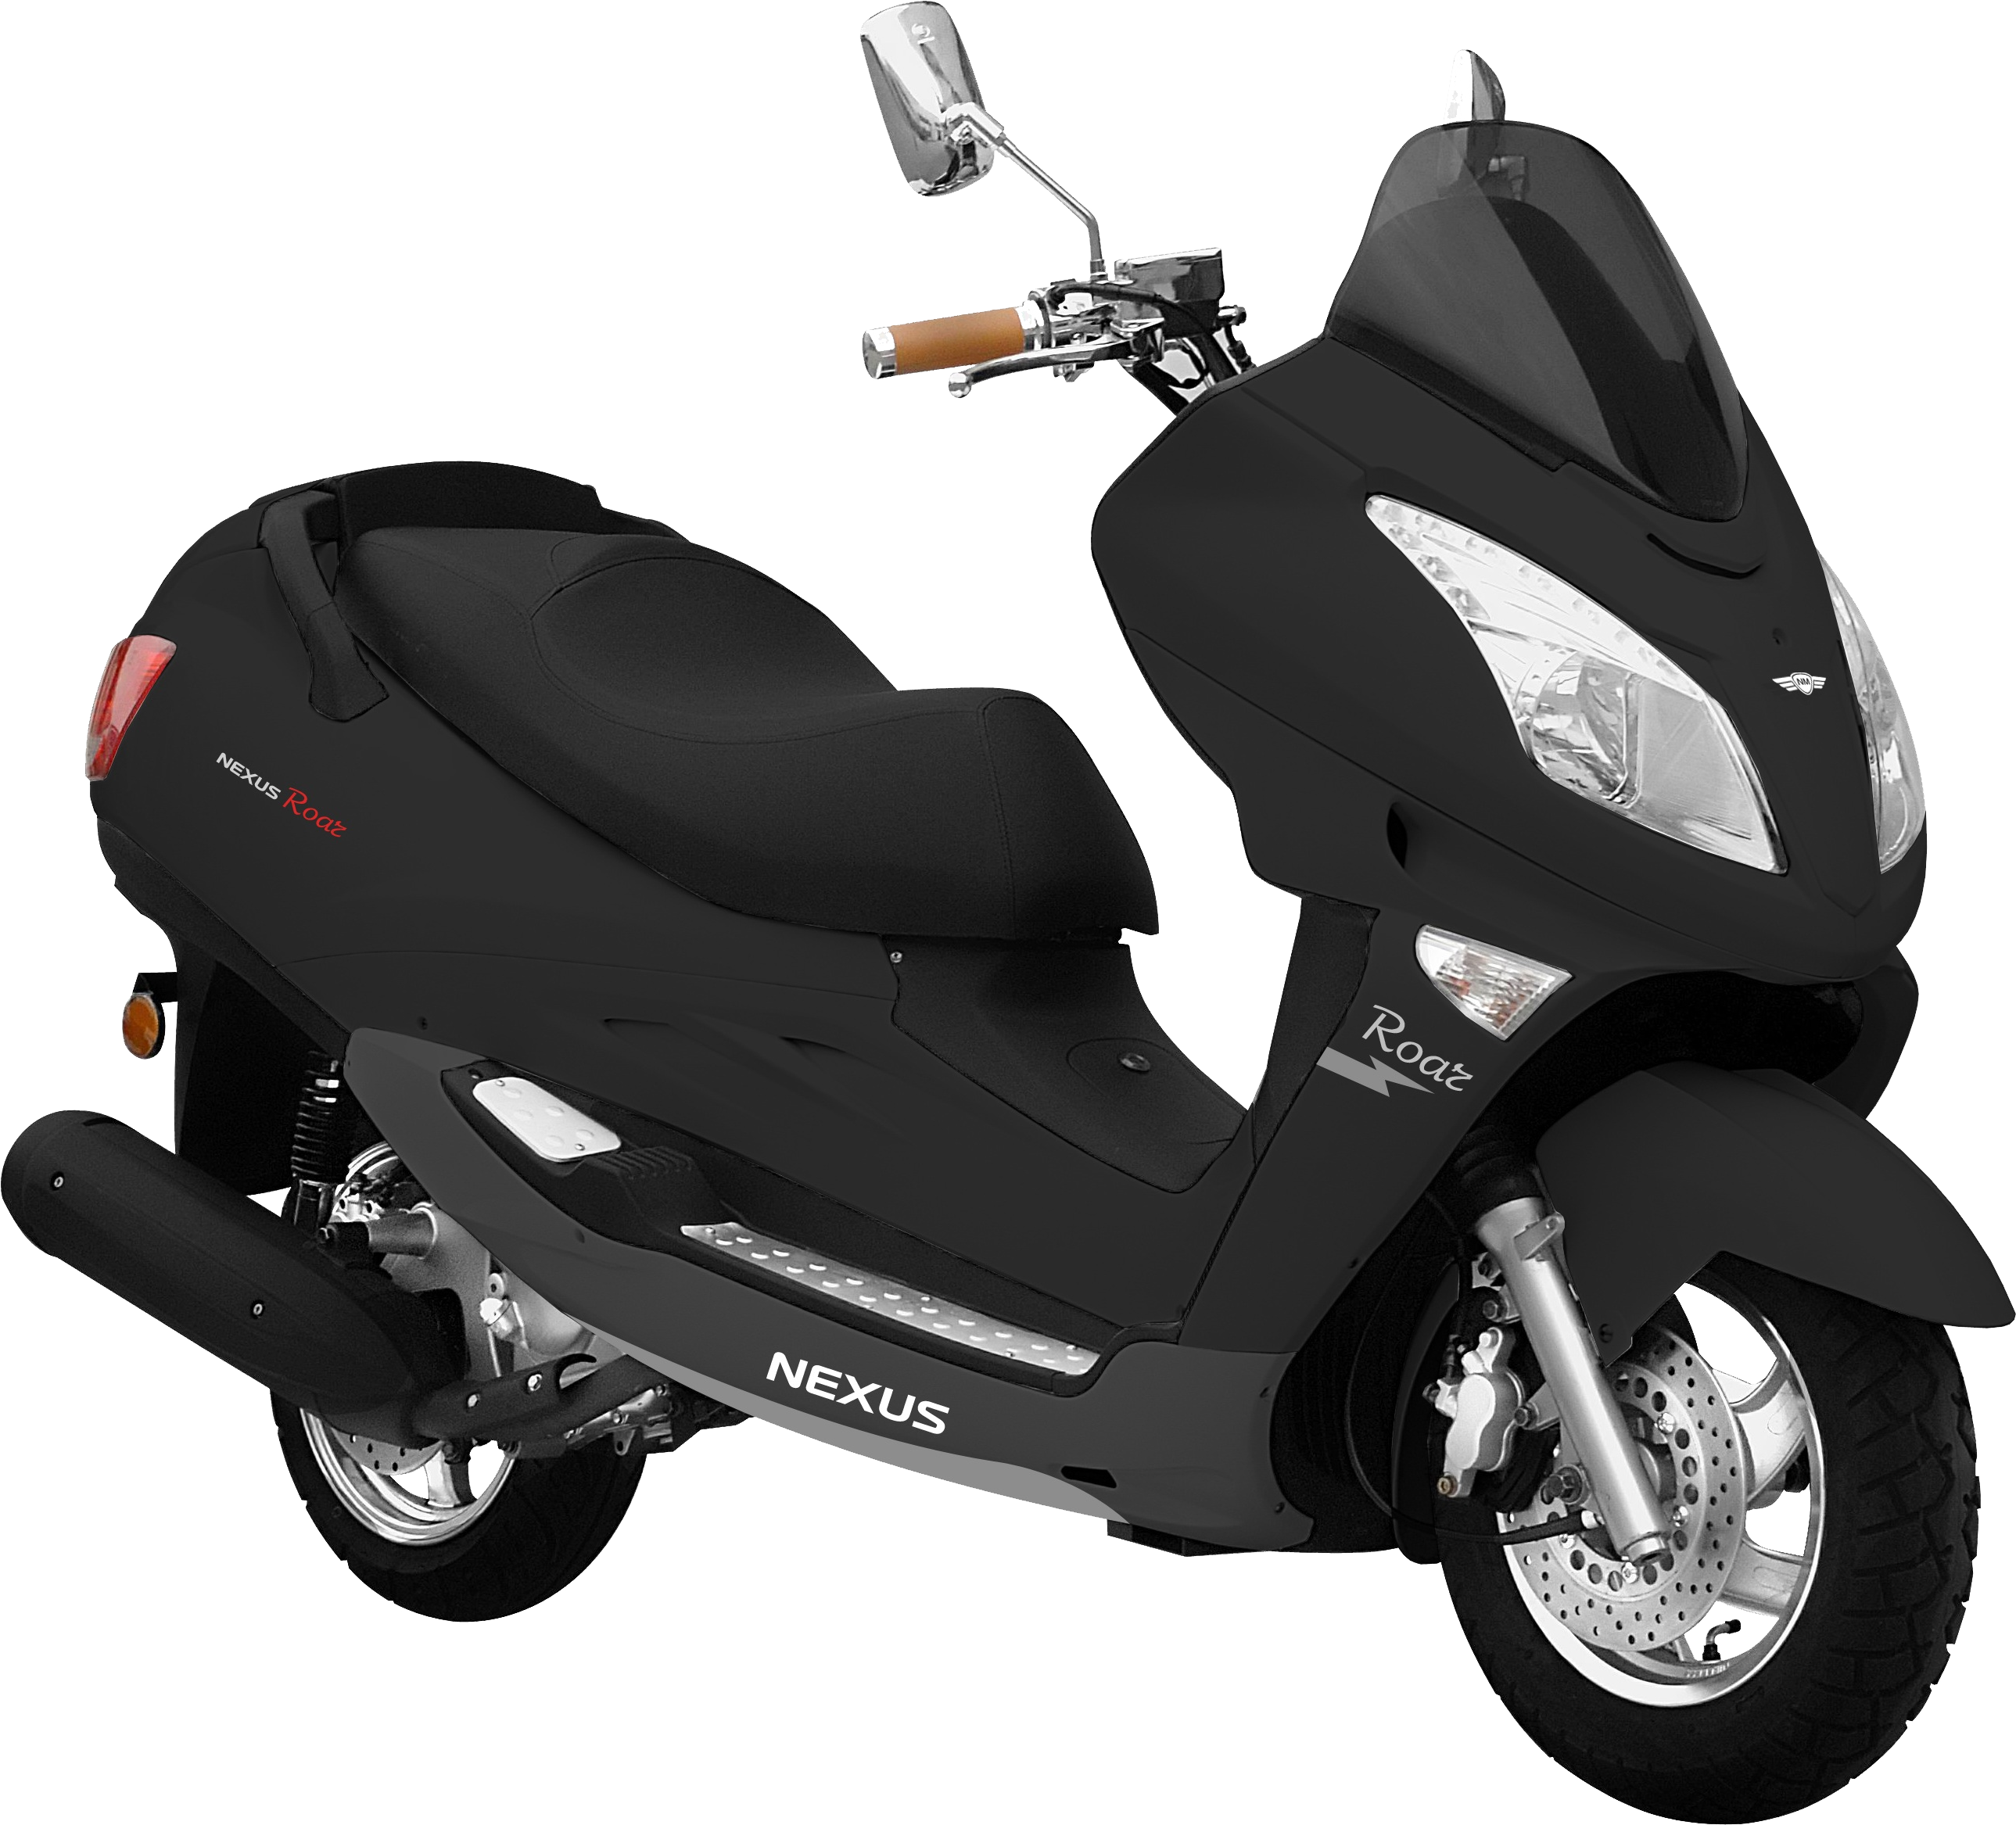 Black scooter PNG image